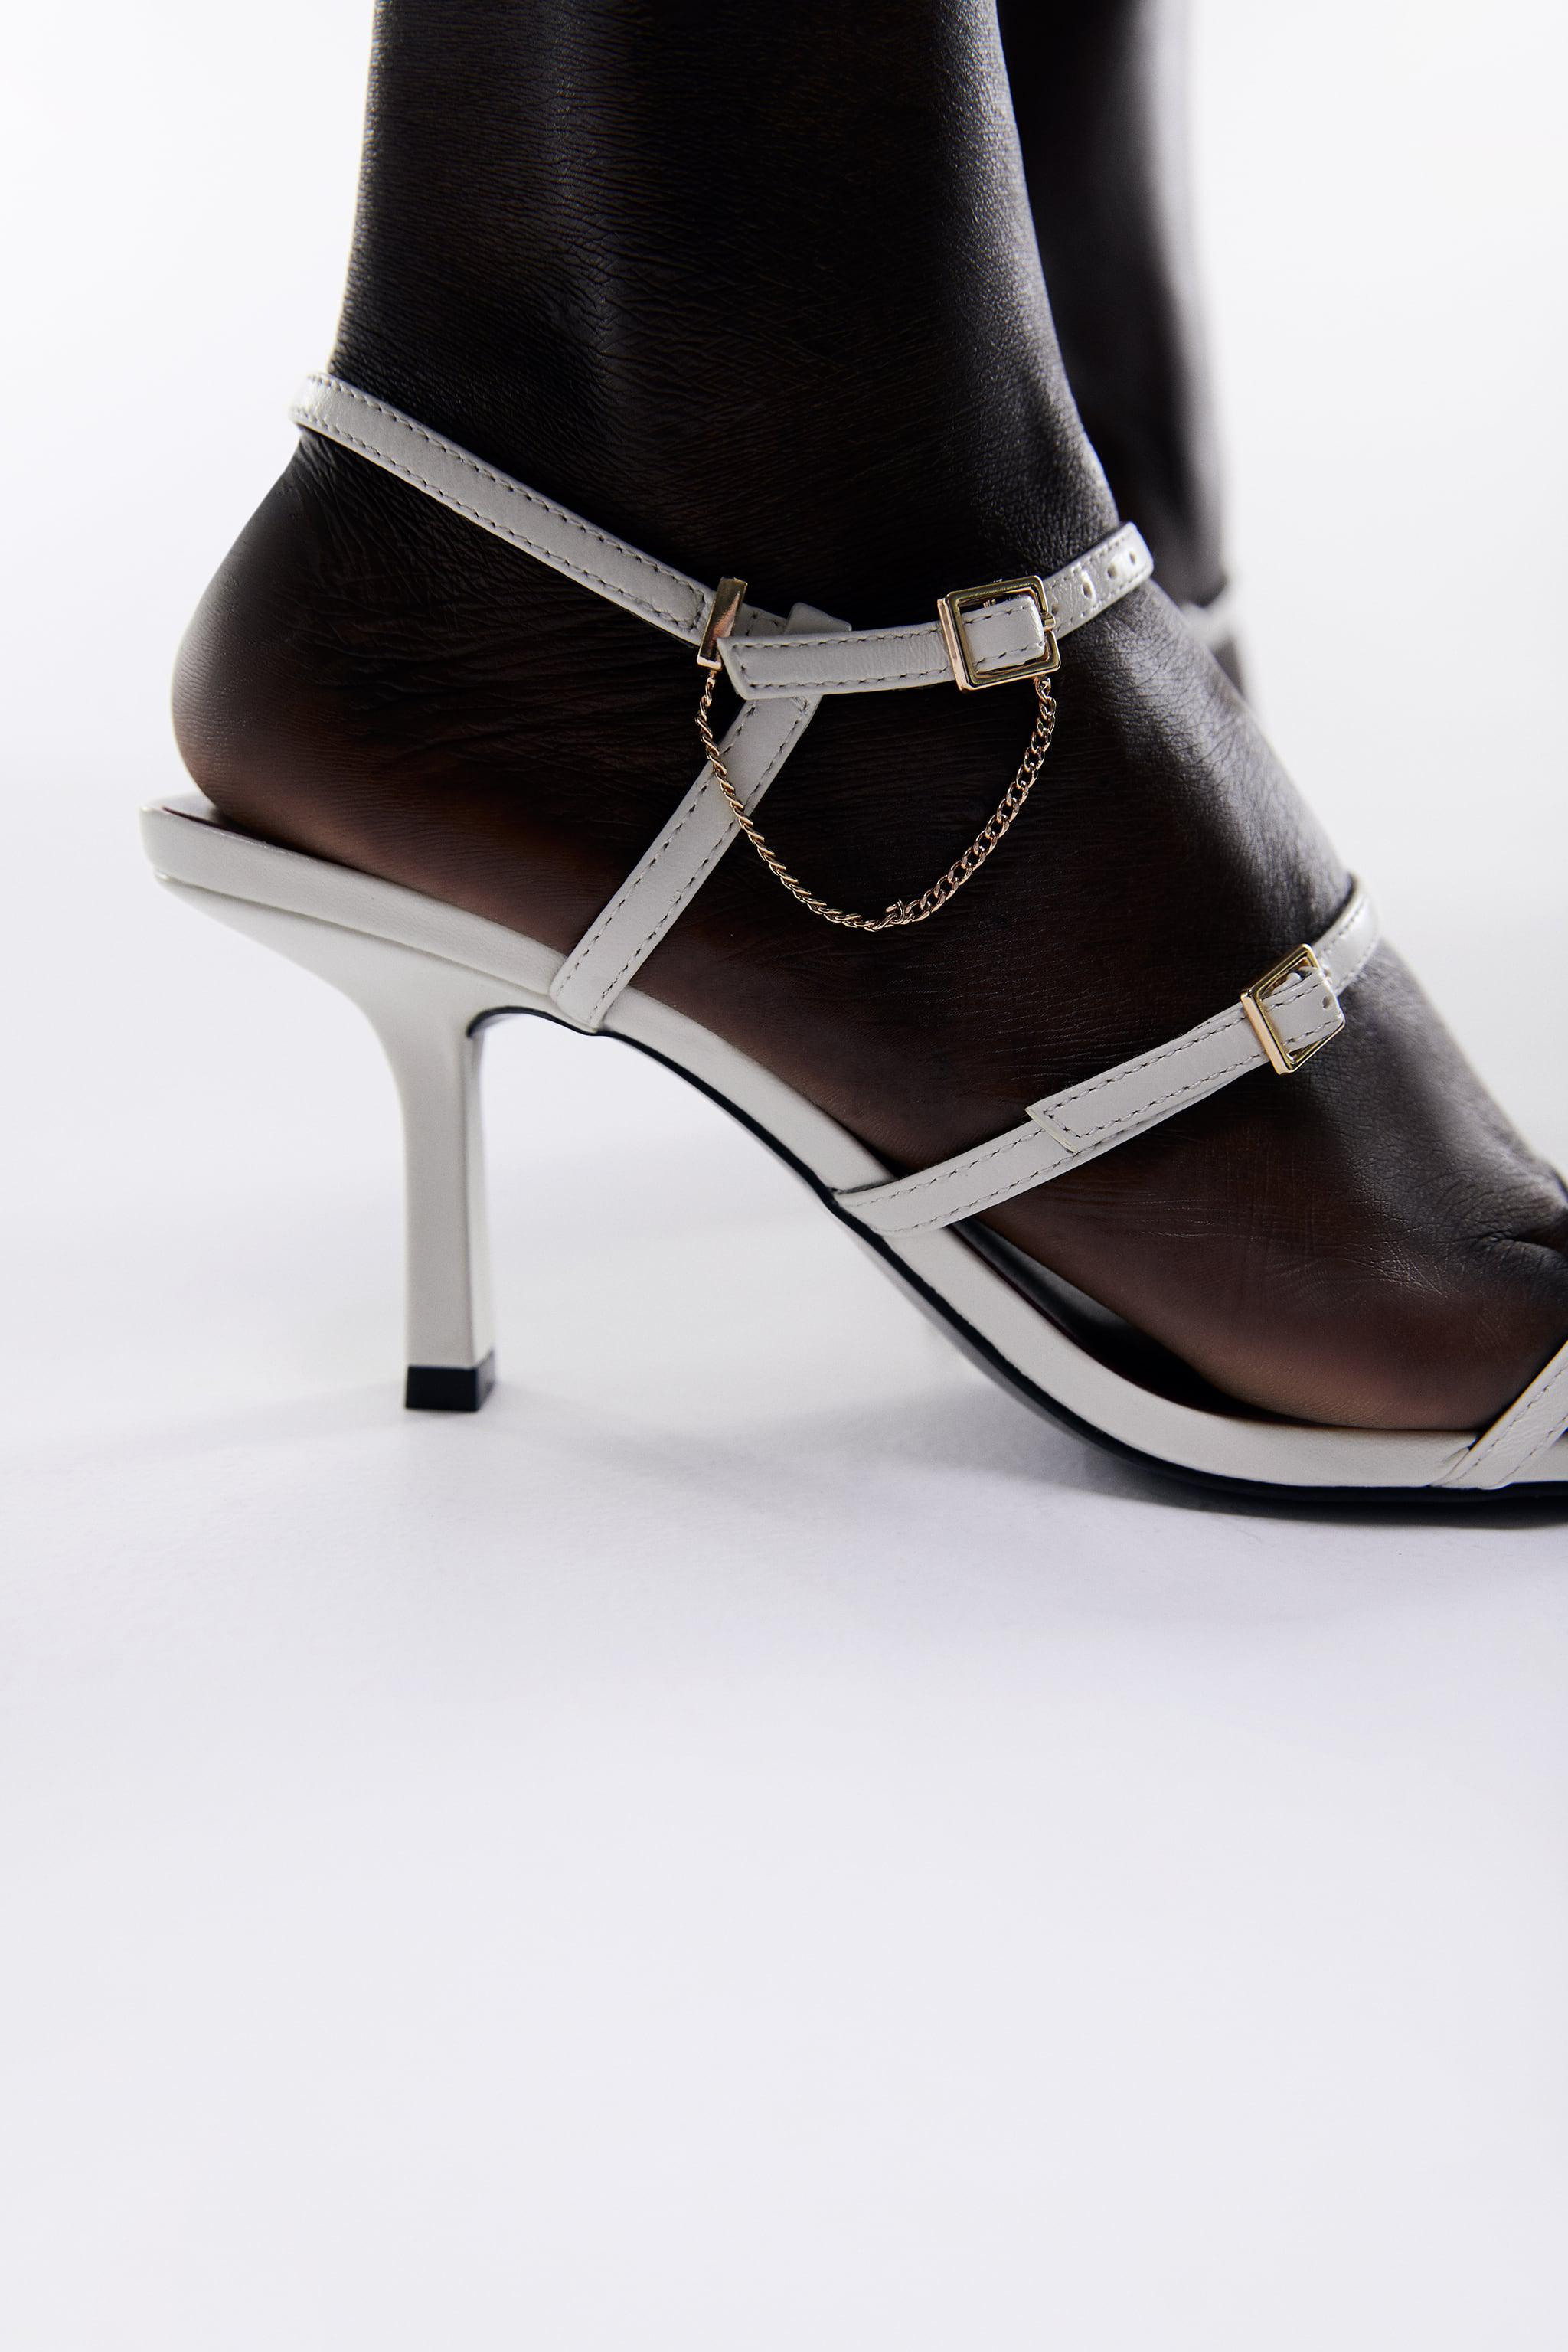 LEATHER HIGH HEEL STRAPPY SANDALS WITH BUCKLES 3